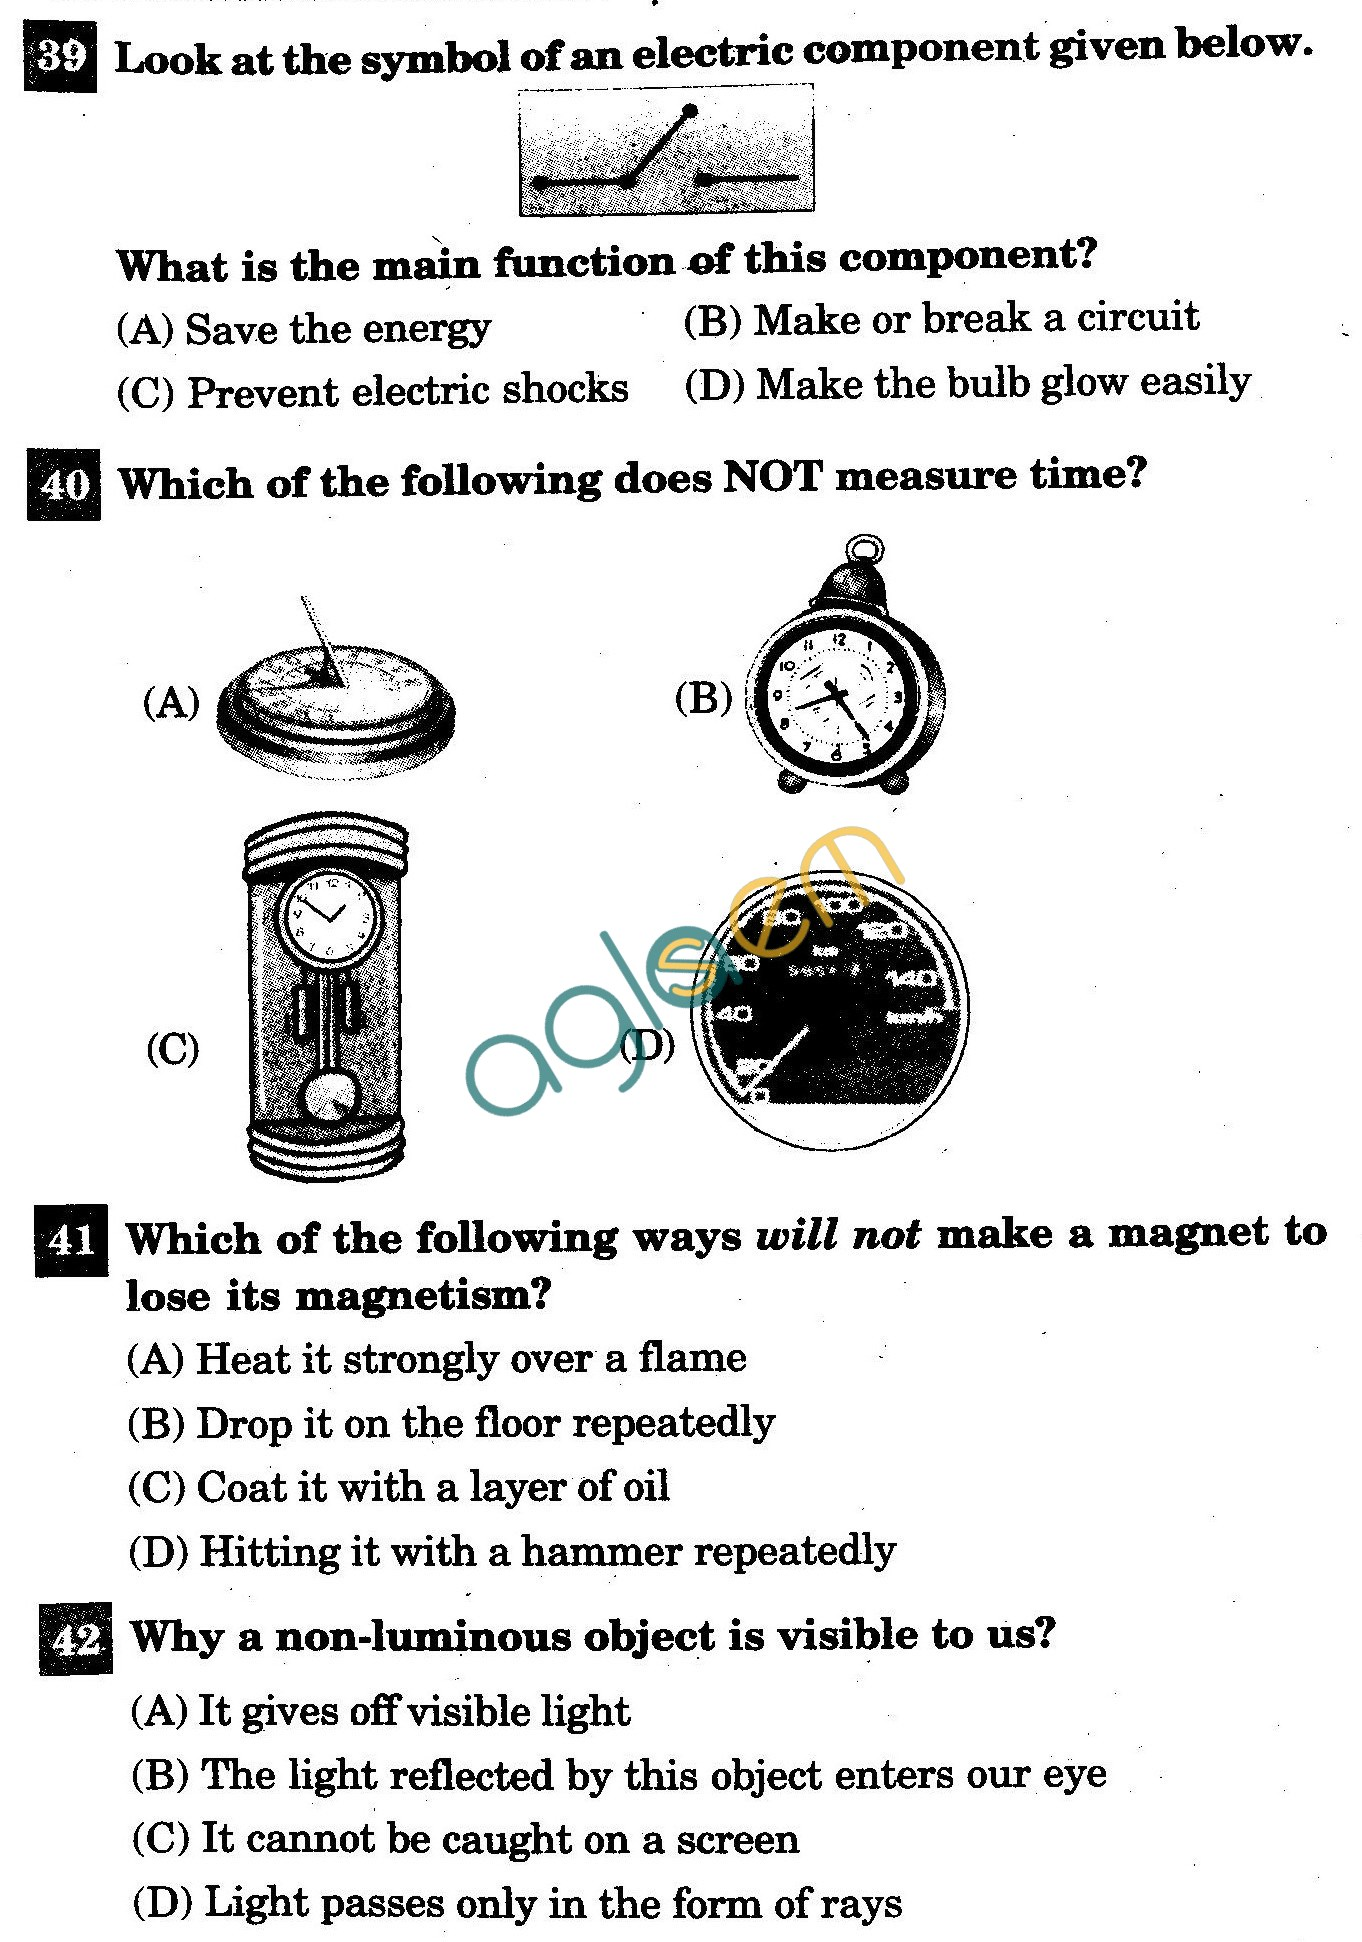 NSTSE 2011: Class VI Question Paper with Answers - Physics